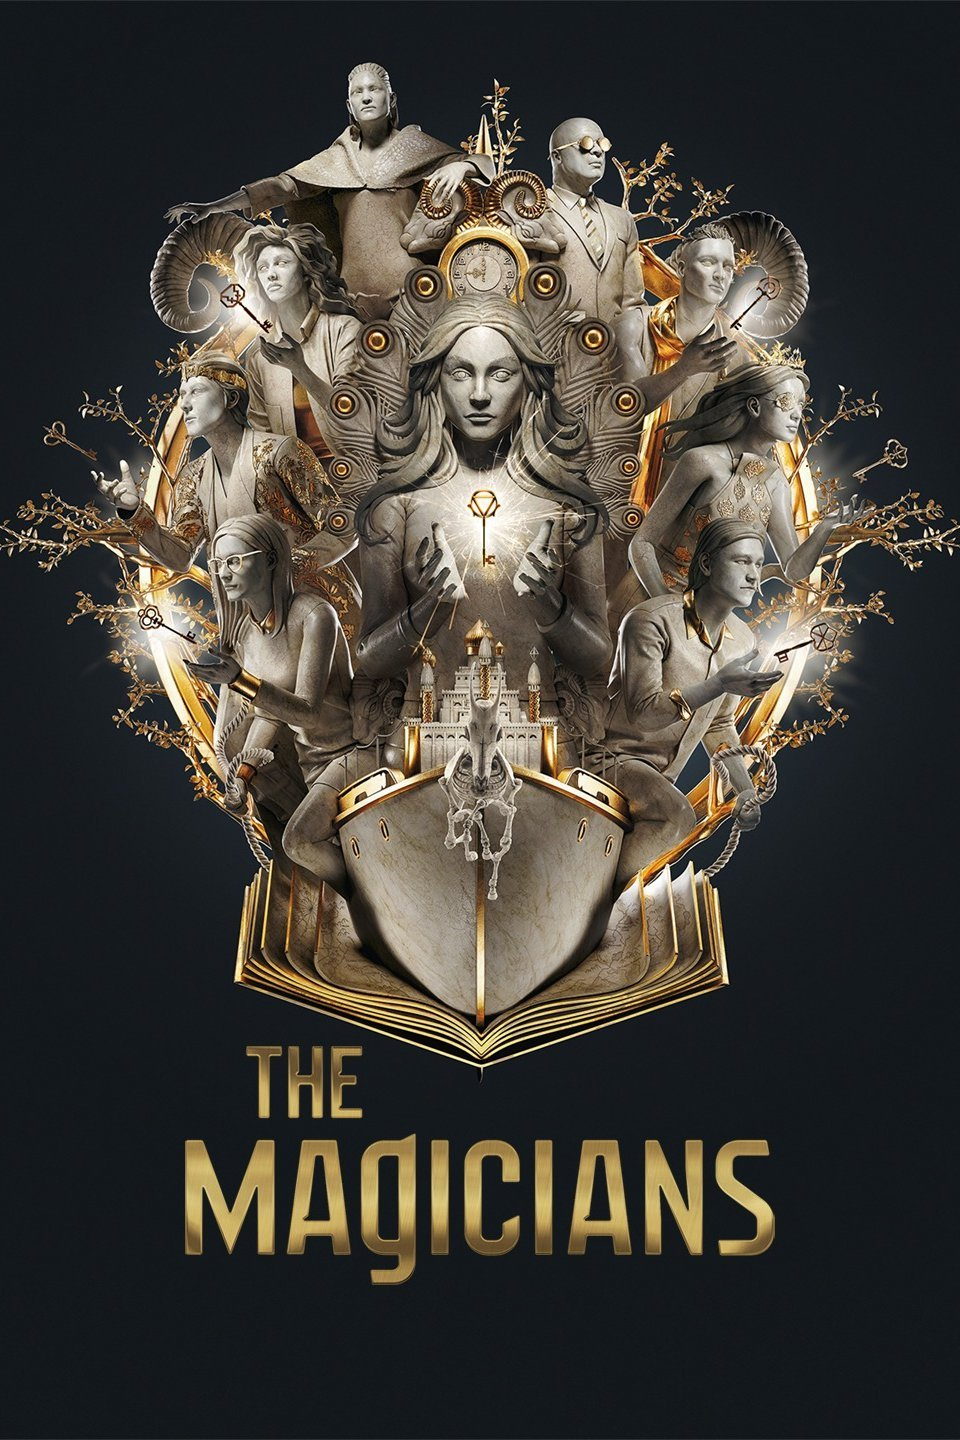 The Magicians Season 2-The Magicians 2